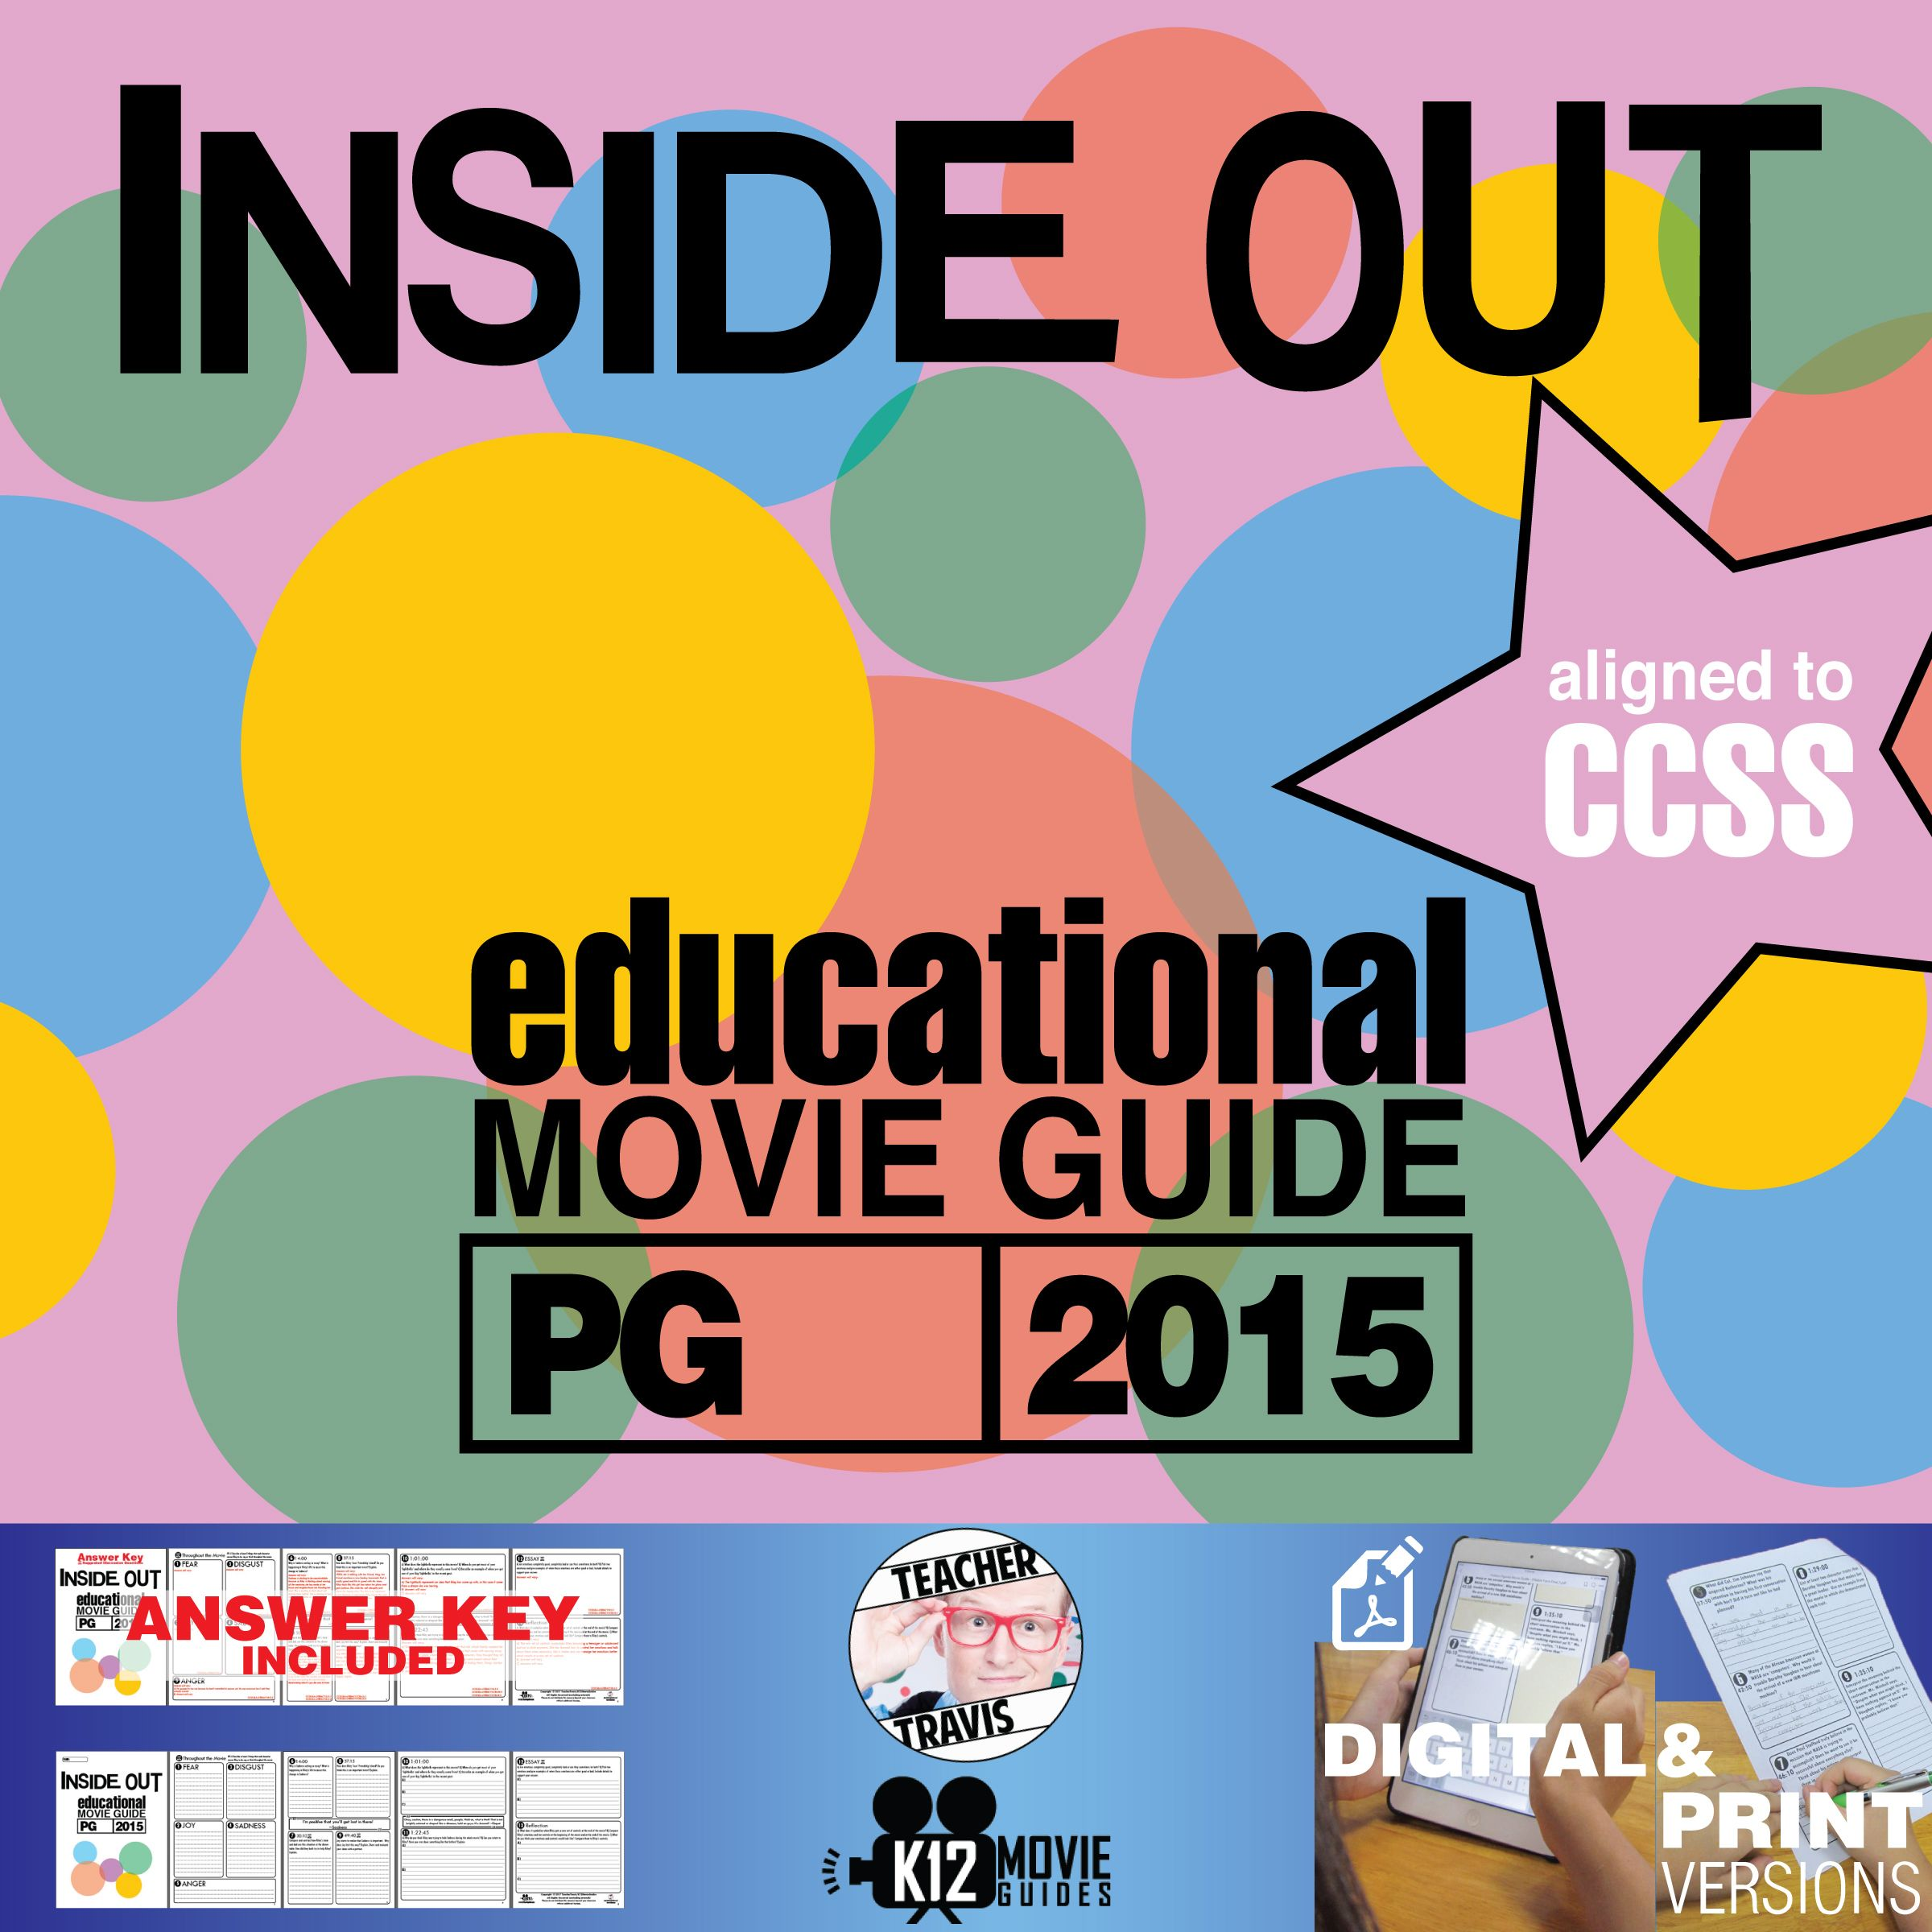 Inside Out Movie Guide Questions Worksheet Pg